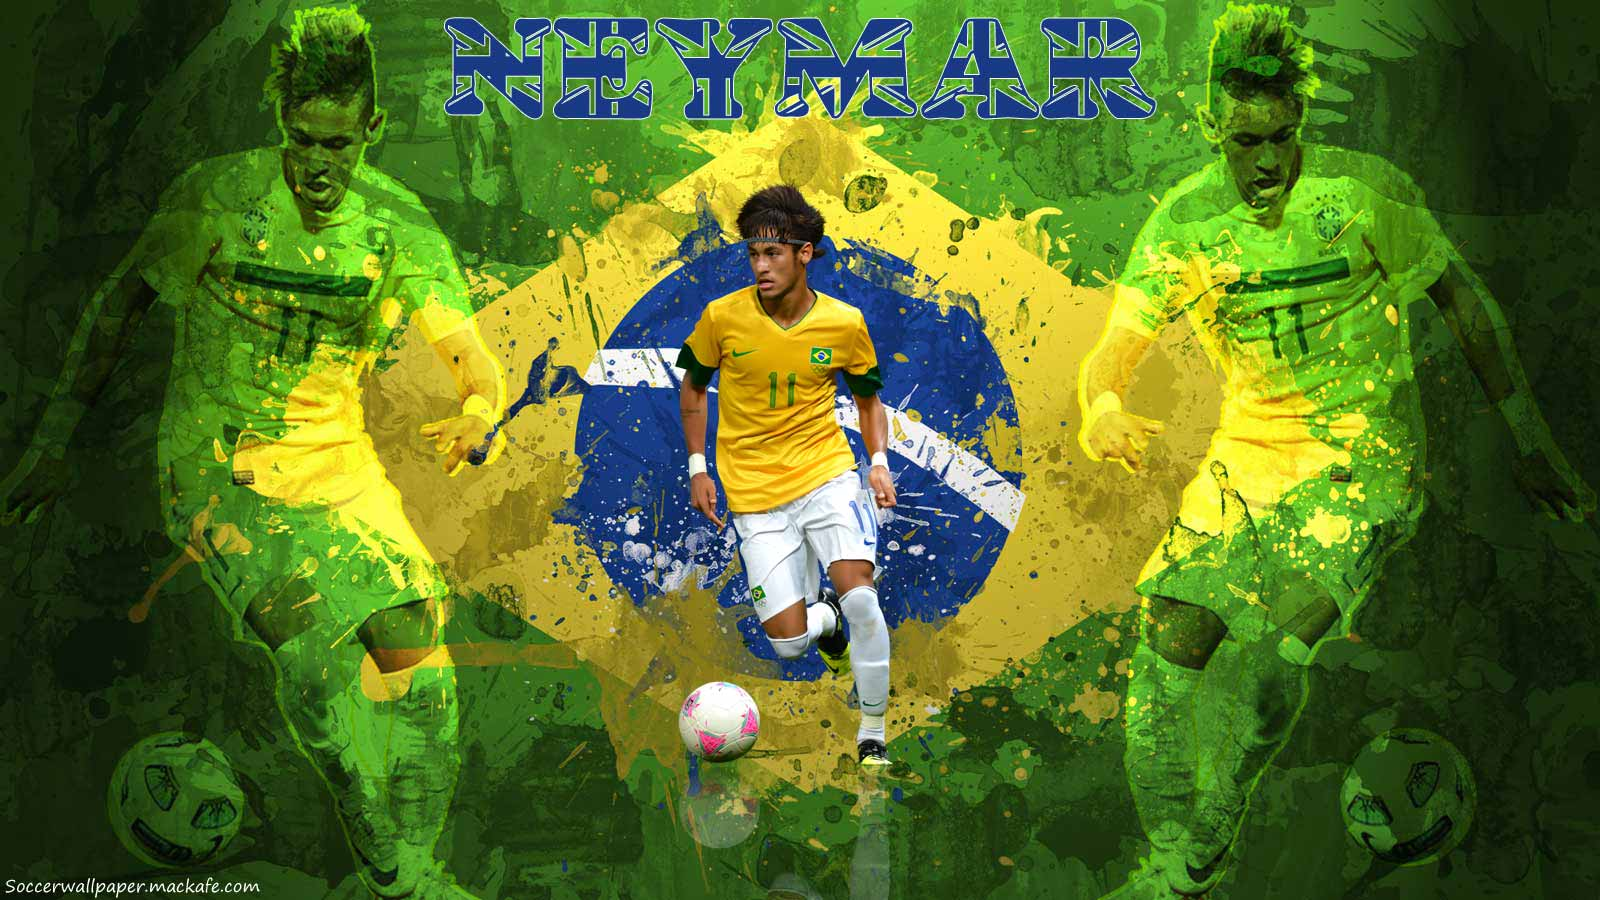 Brazil flag wallpapers 2015 wallpaper cave - Brazil football hd wallpapers 2018 ...